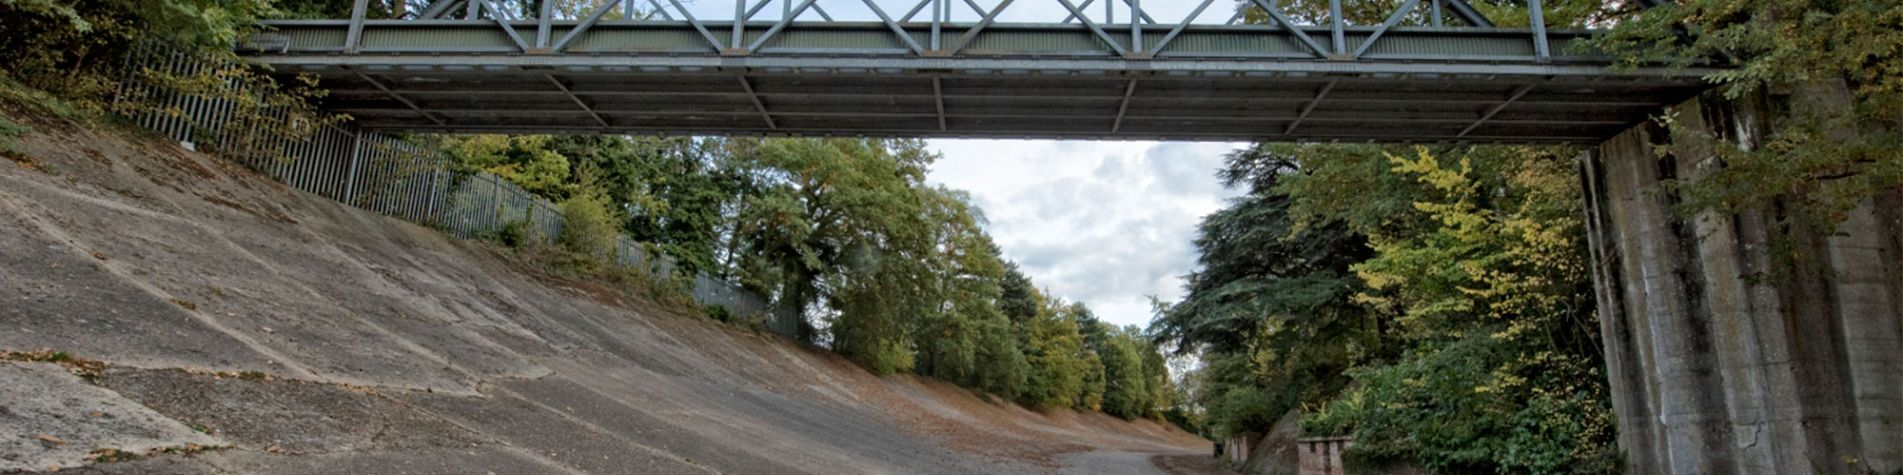 Brooklands-banking-header.jpg